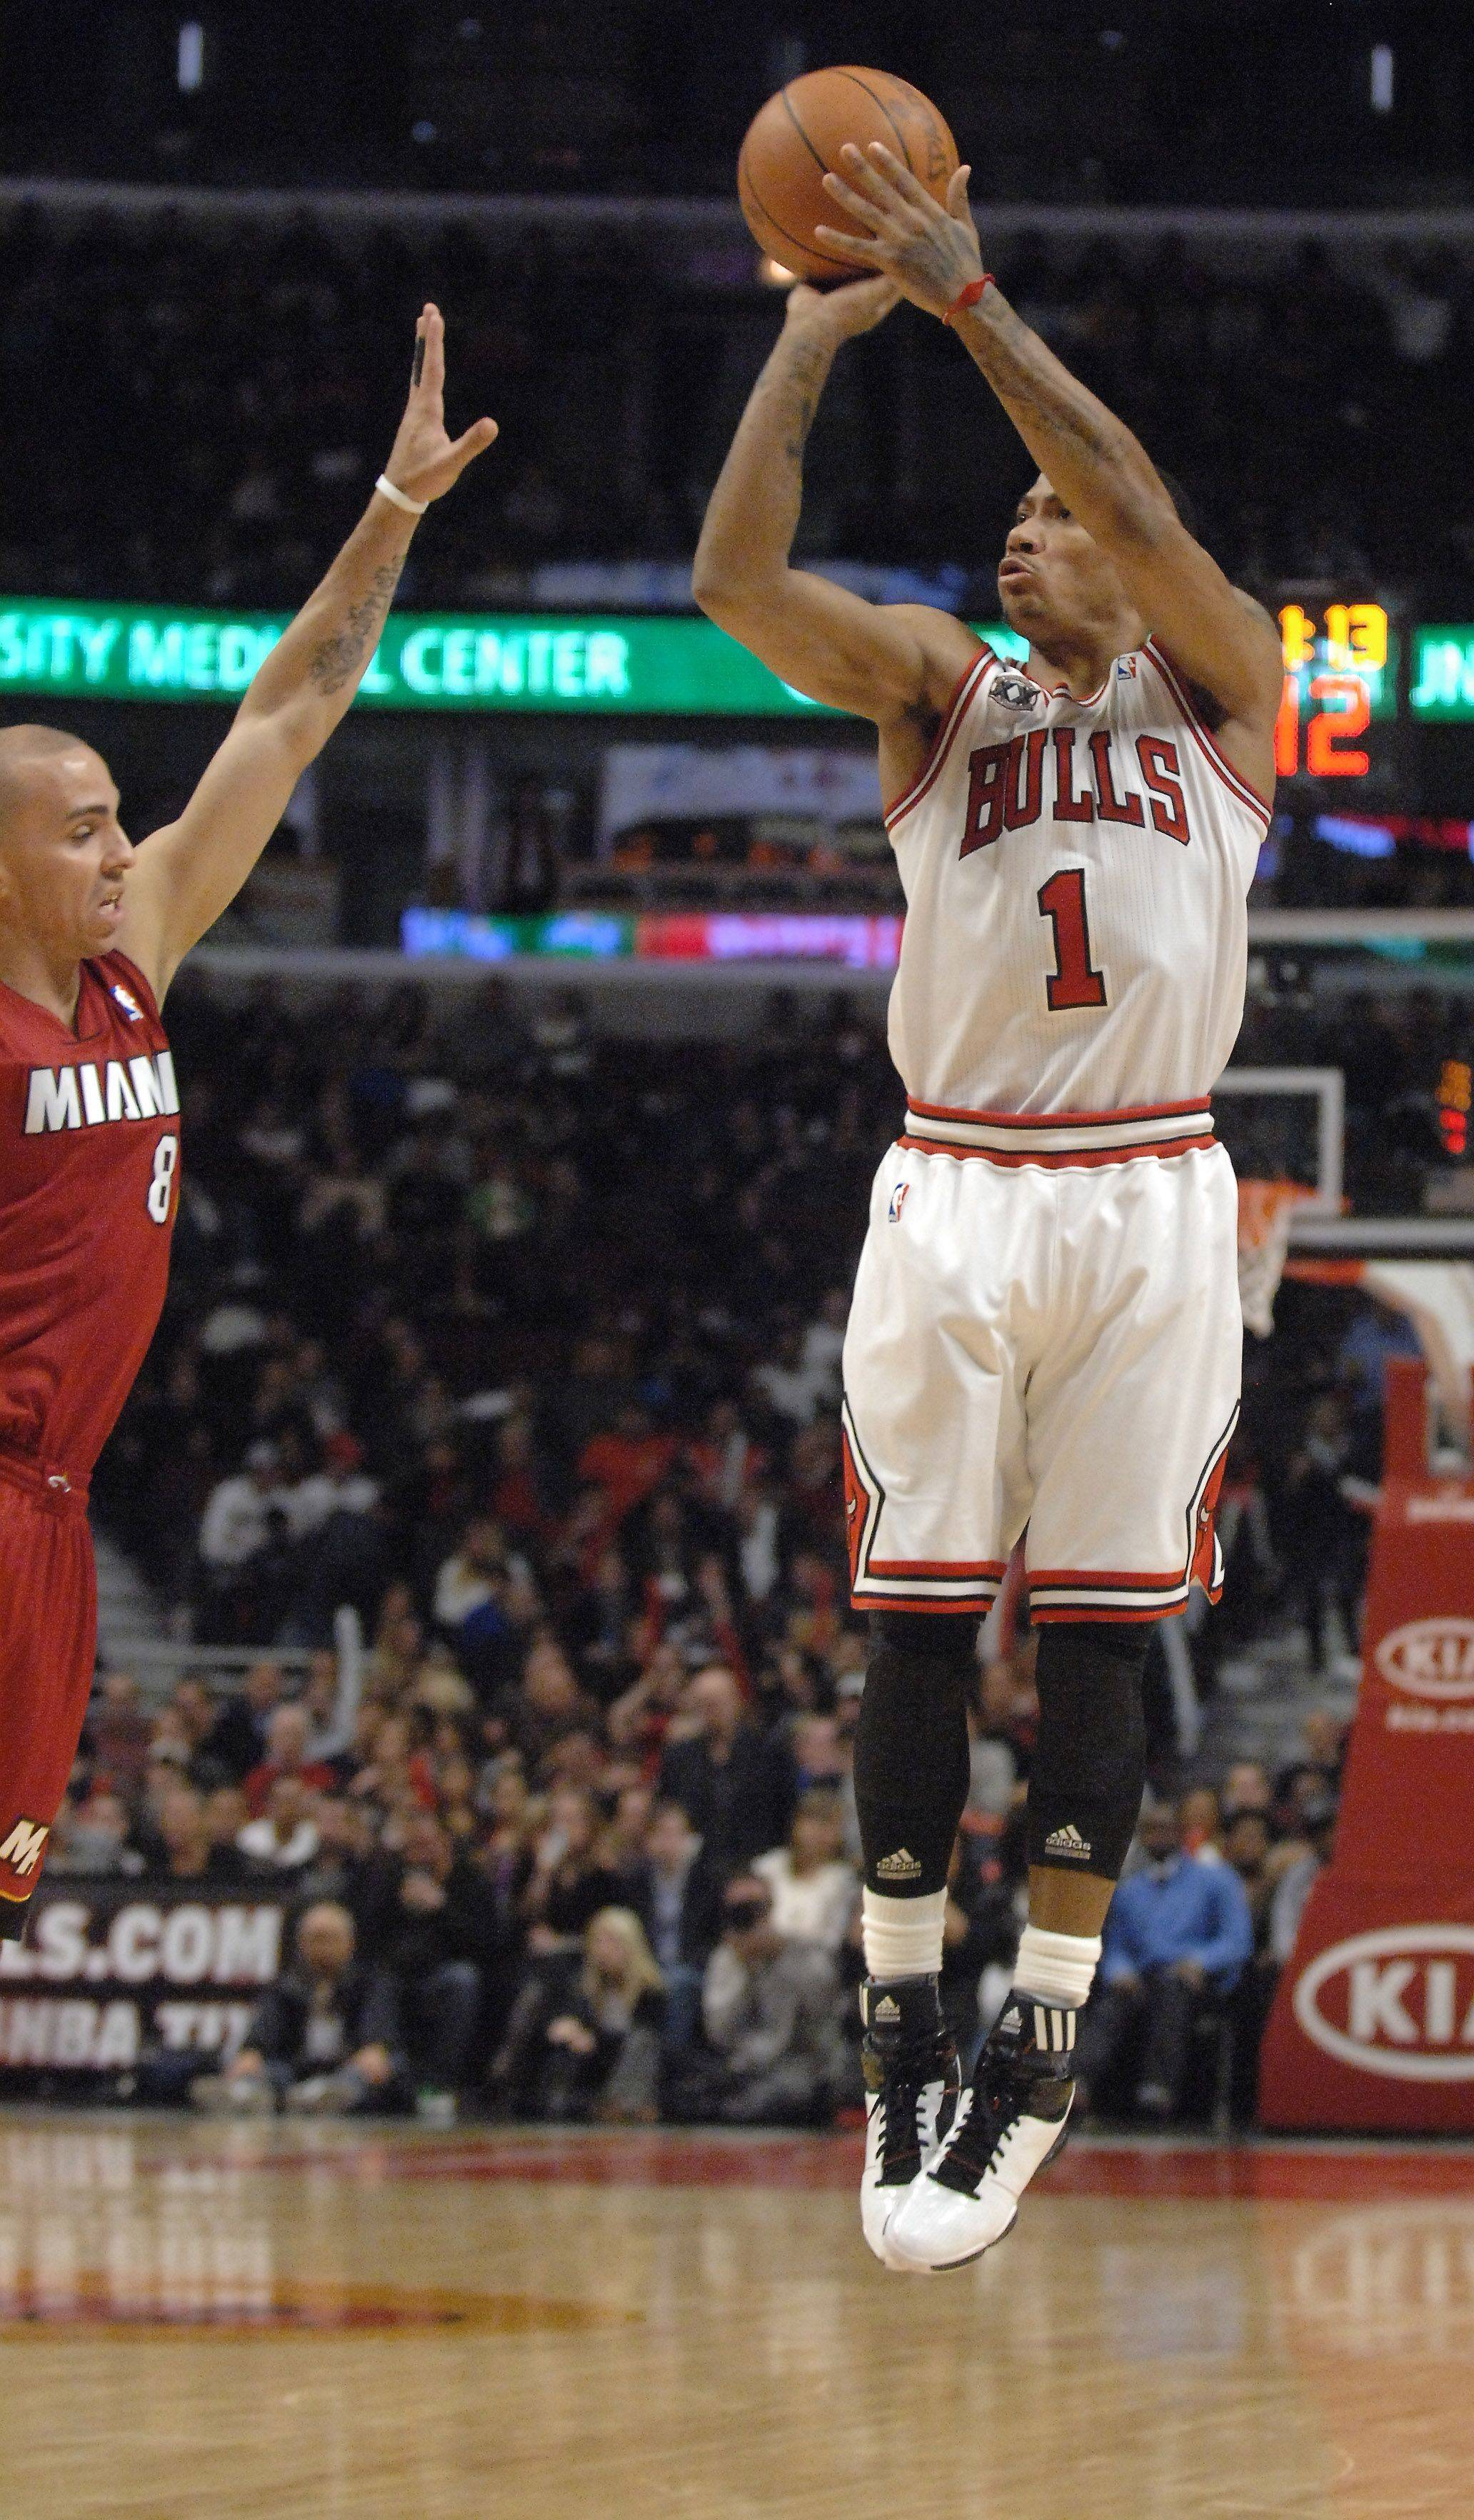 Chicago Bulls point guard Derrick Rose drains one of two 3-pointers he made to start the second half against Miami during Saturday's game at the United Center in Chicago.